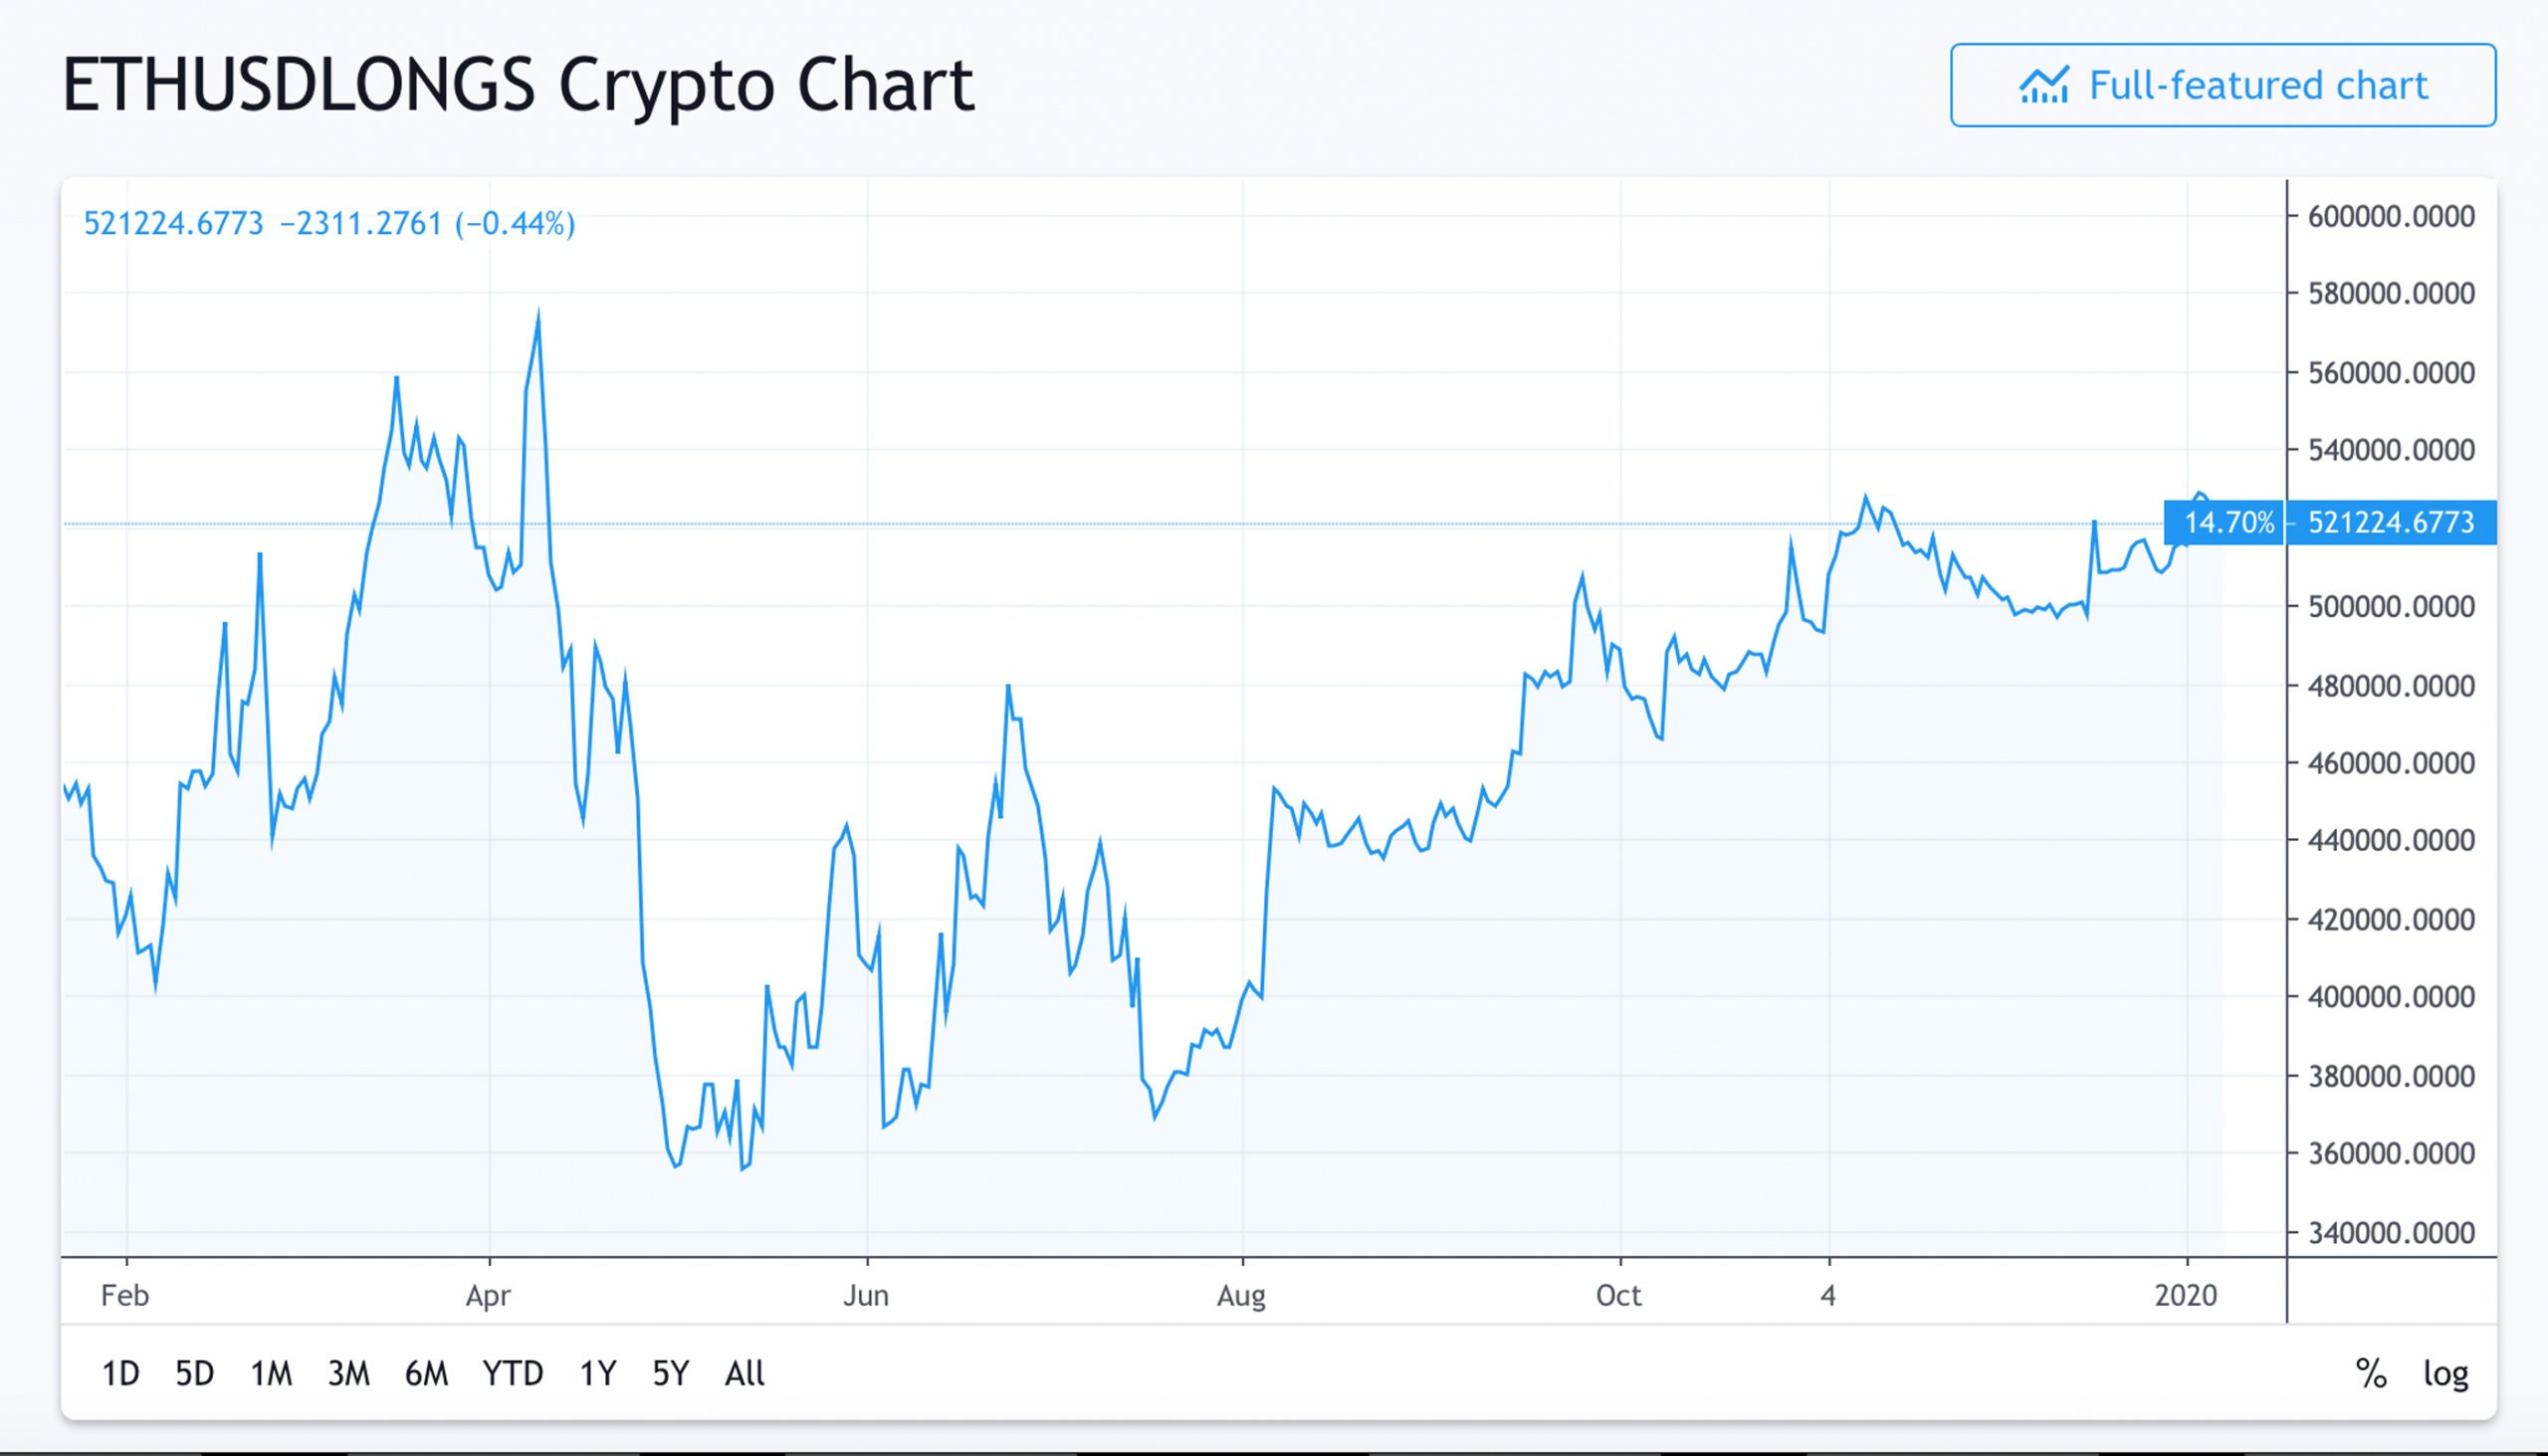 Market Update: Top Cryptos Face Strong Resistance Ahead